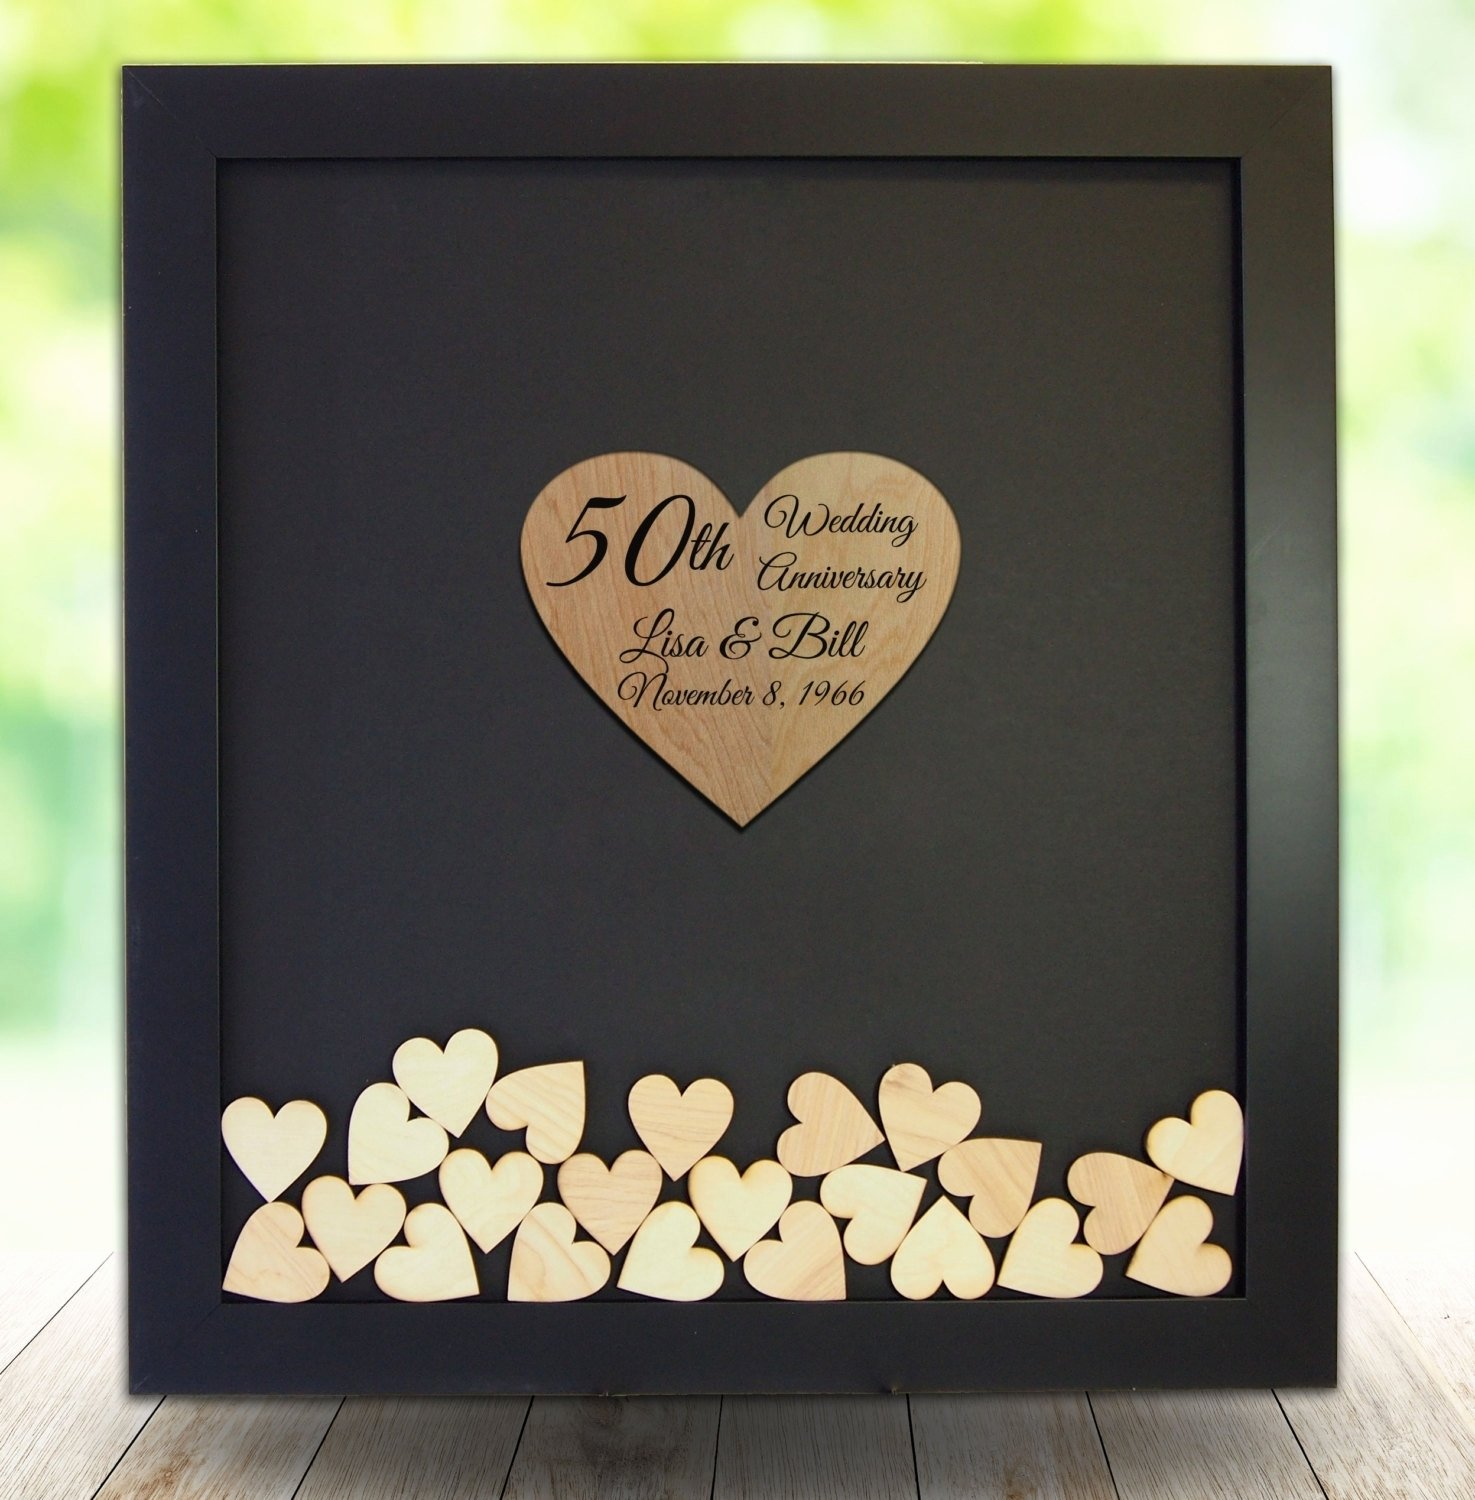 10 stylish 50th wedding anniversary gift ideas